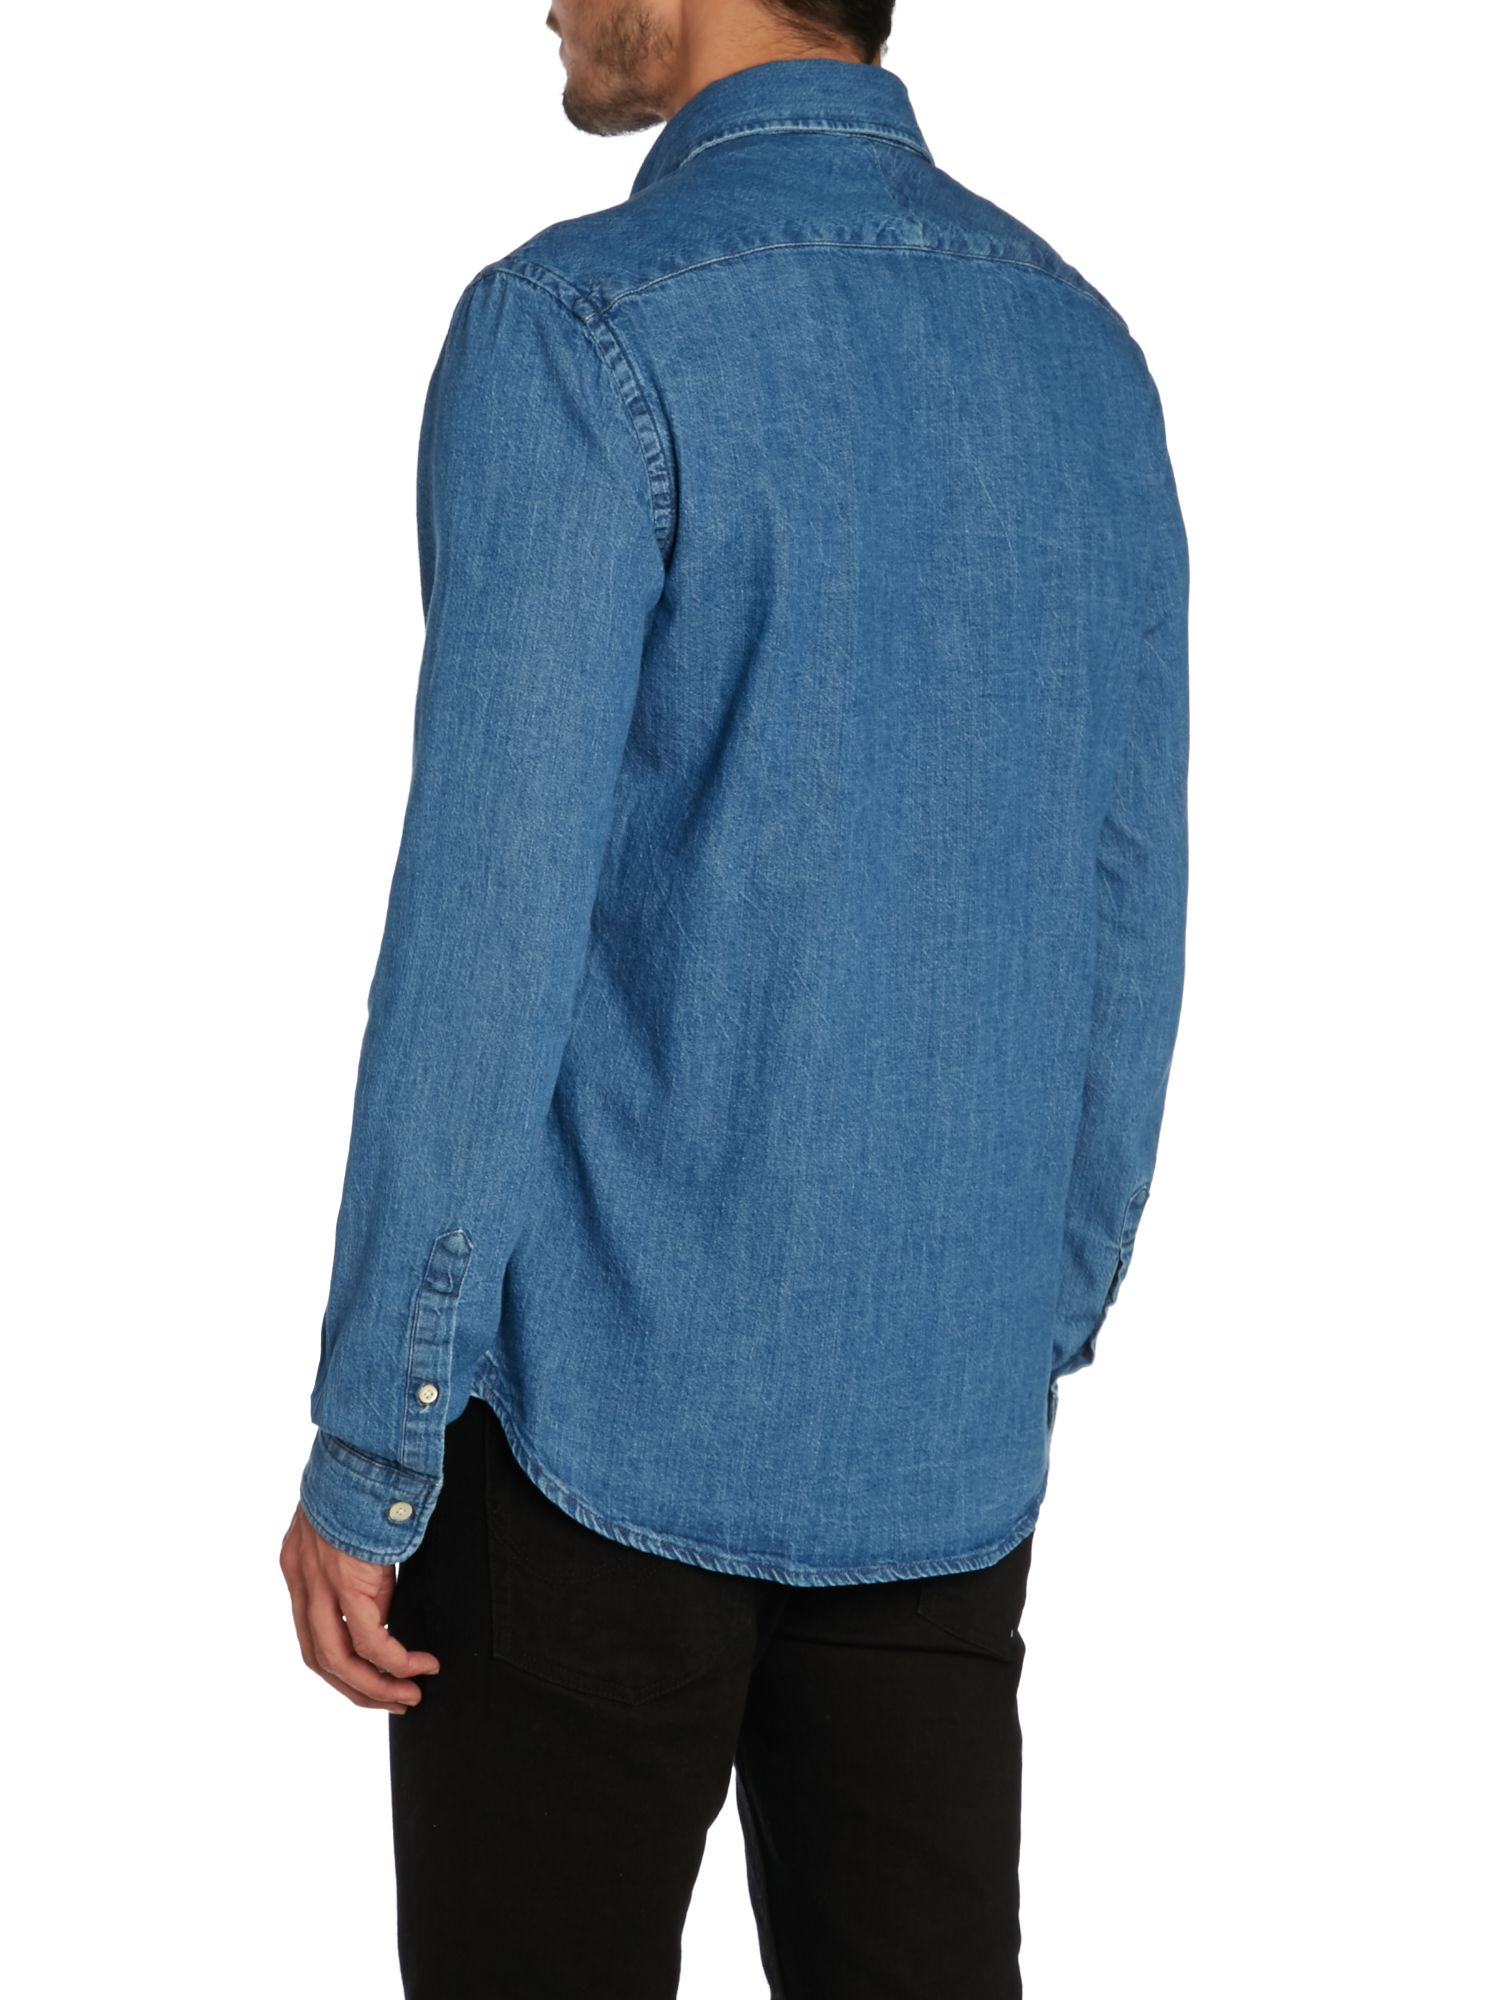 Paul Smith Tailored Fit Long Sleeve Denim Shirt In Blue